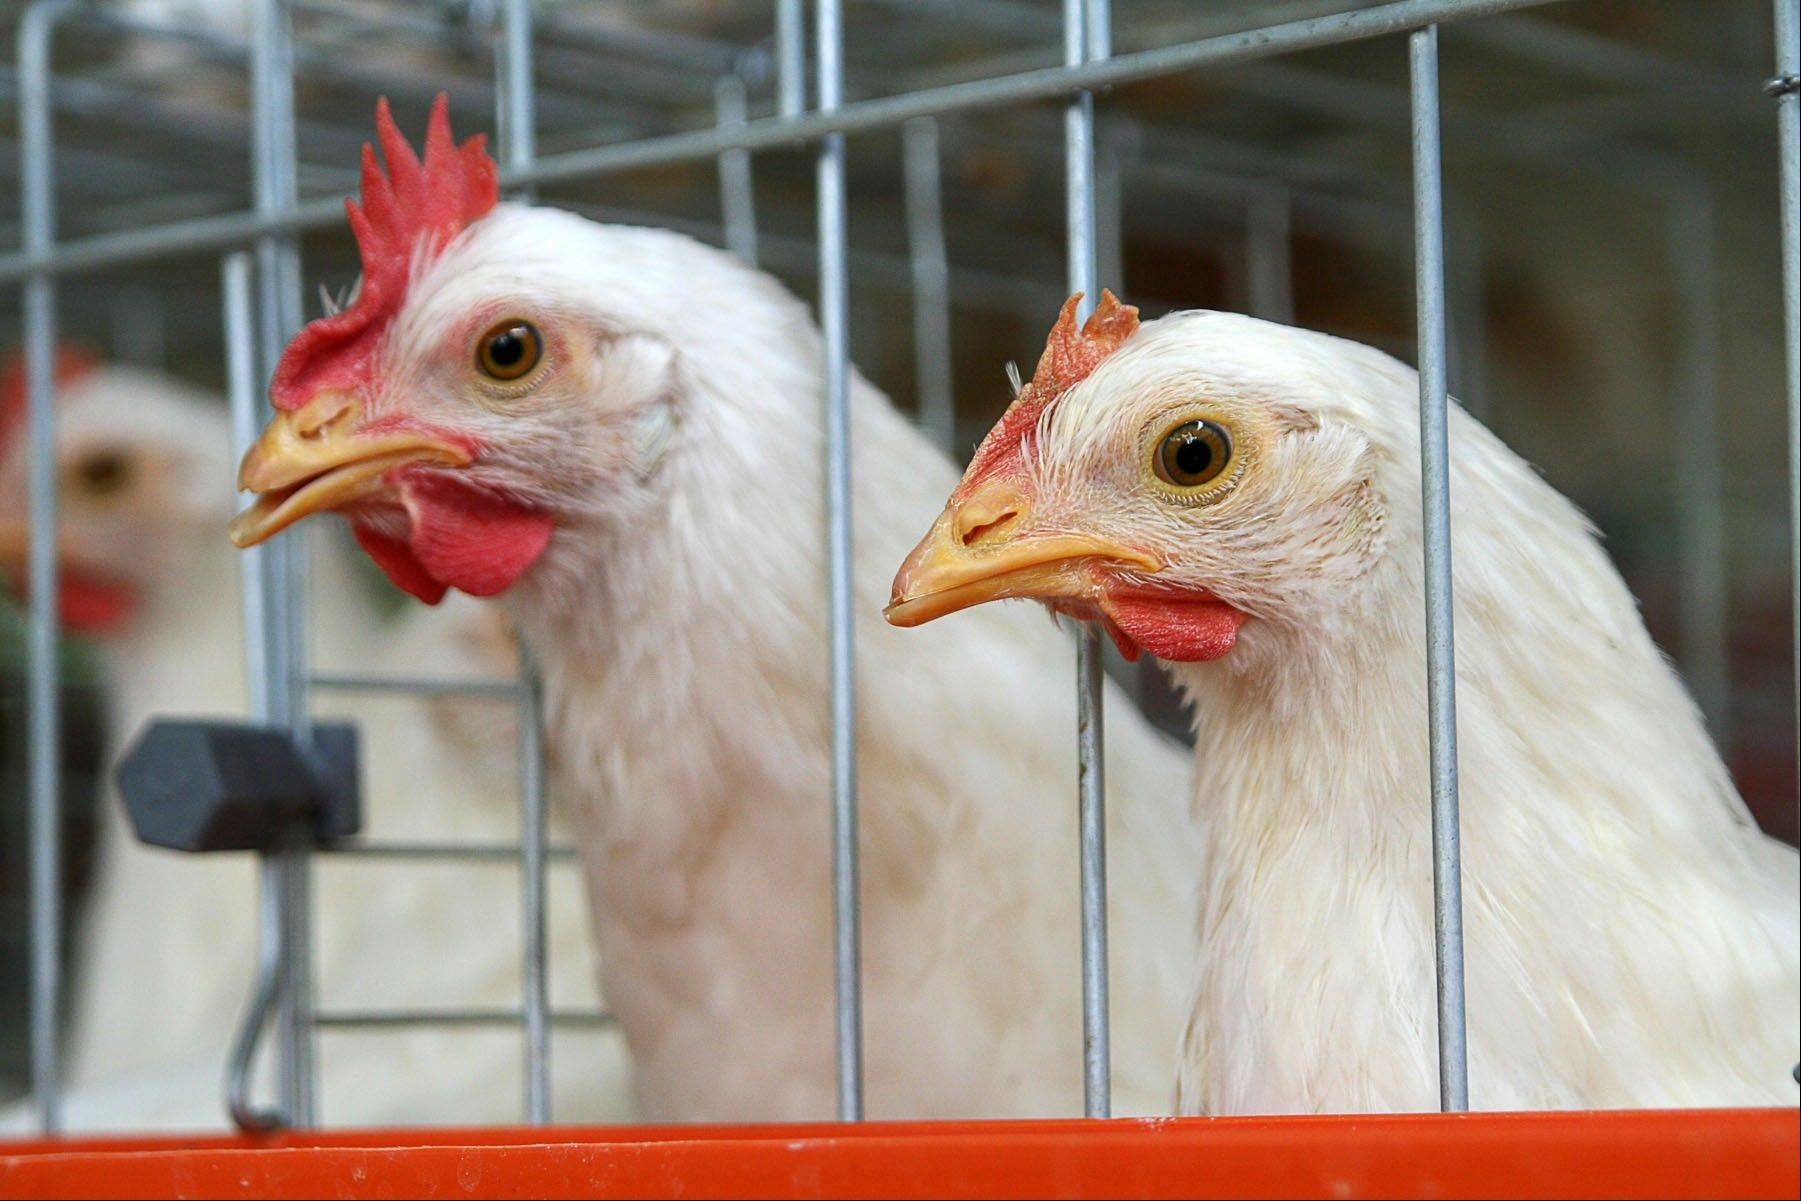 Libertyville may let residents keep chickens